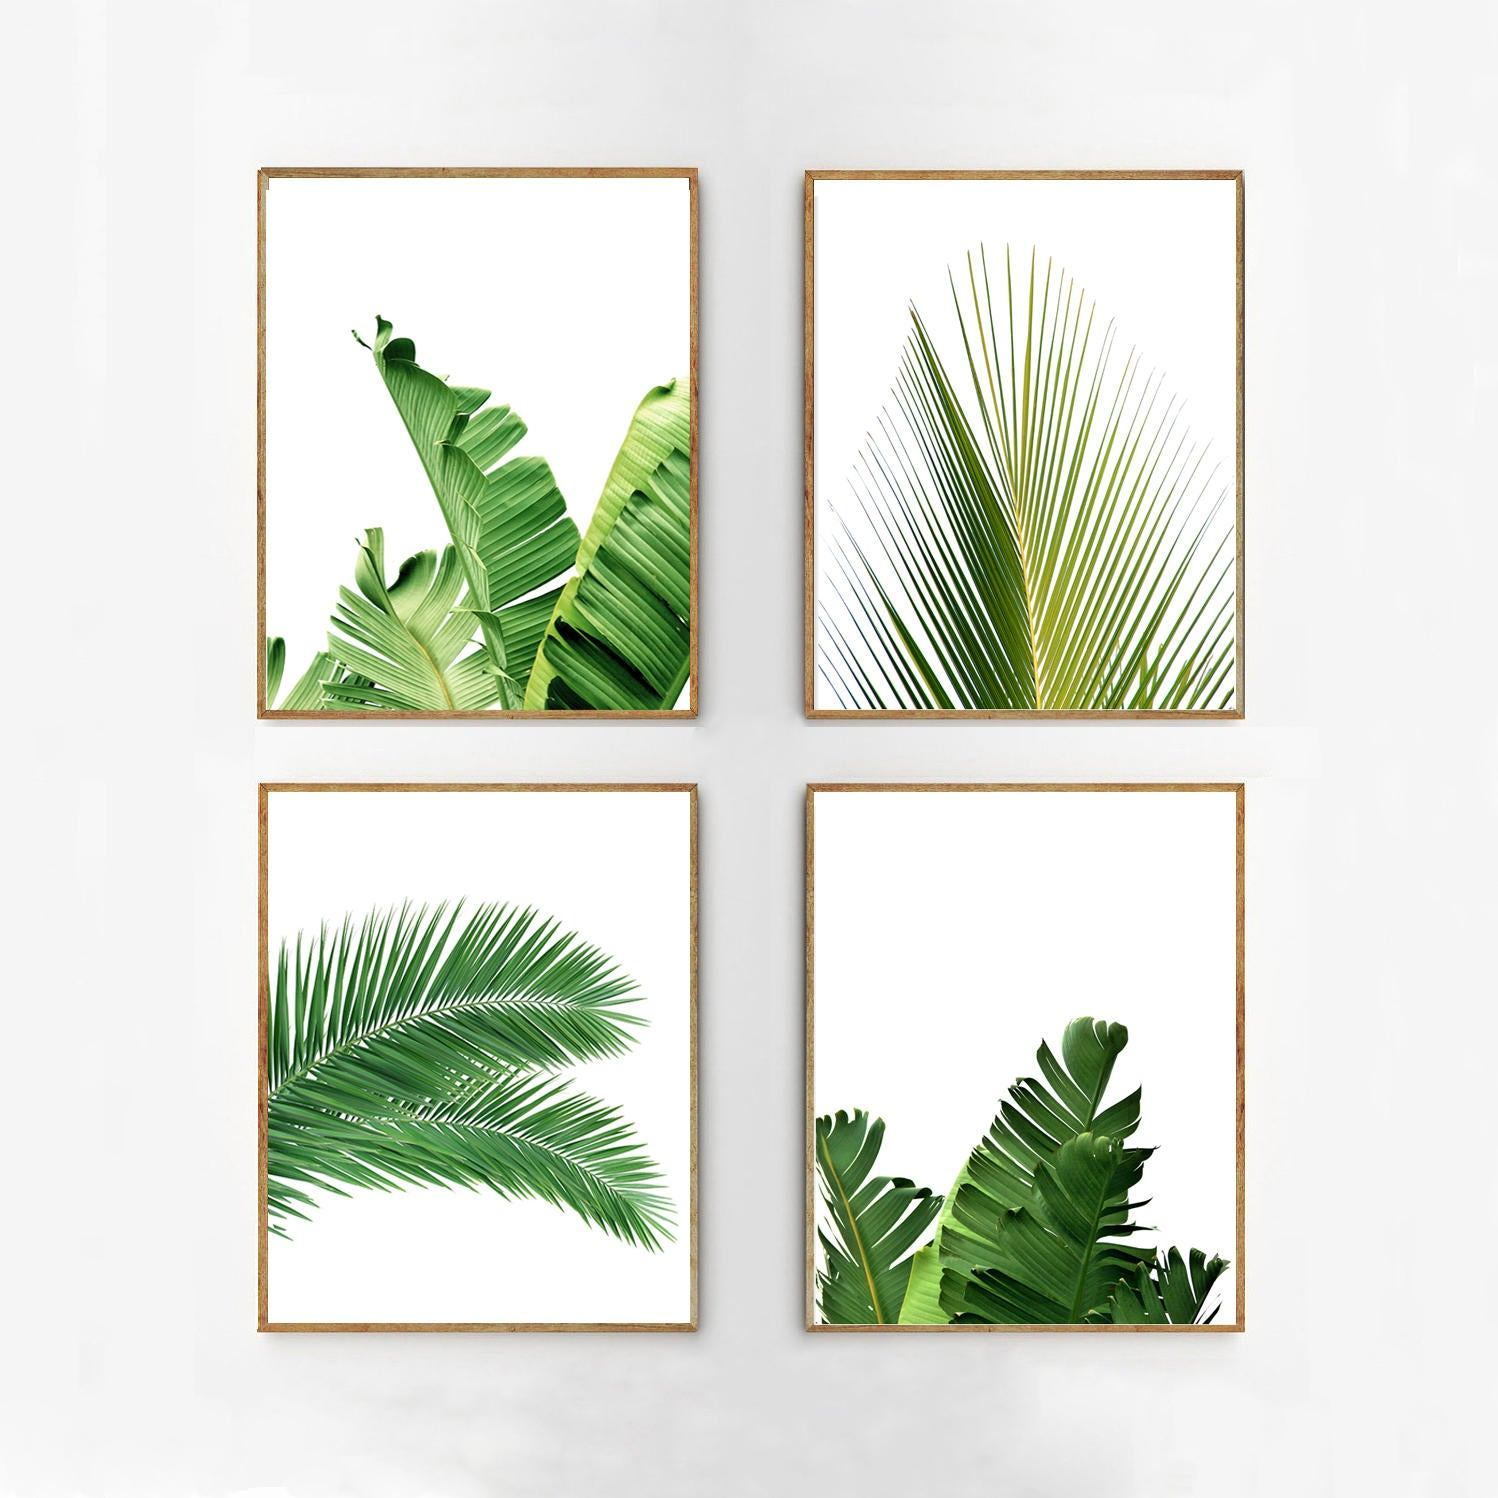 Desford Leaf Wall Decor By Charlton Home Throughout Most Up To Date Leaf Wall Art – Ronniebrownlifesystems (View 4 of 20)